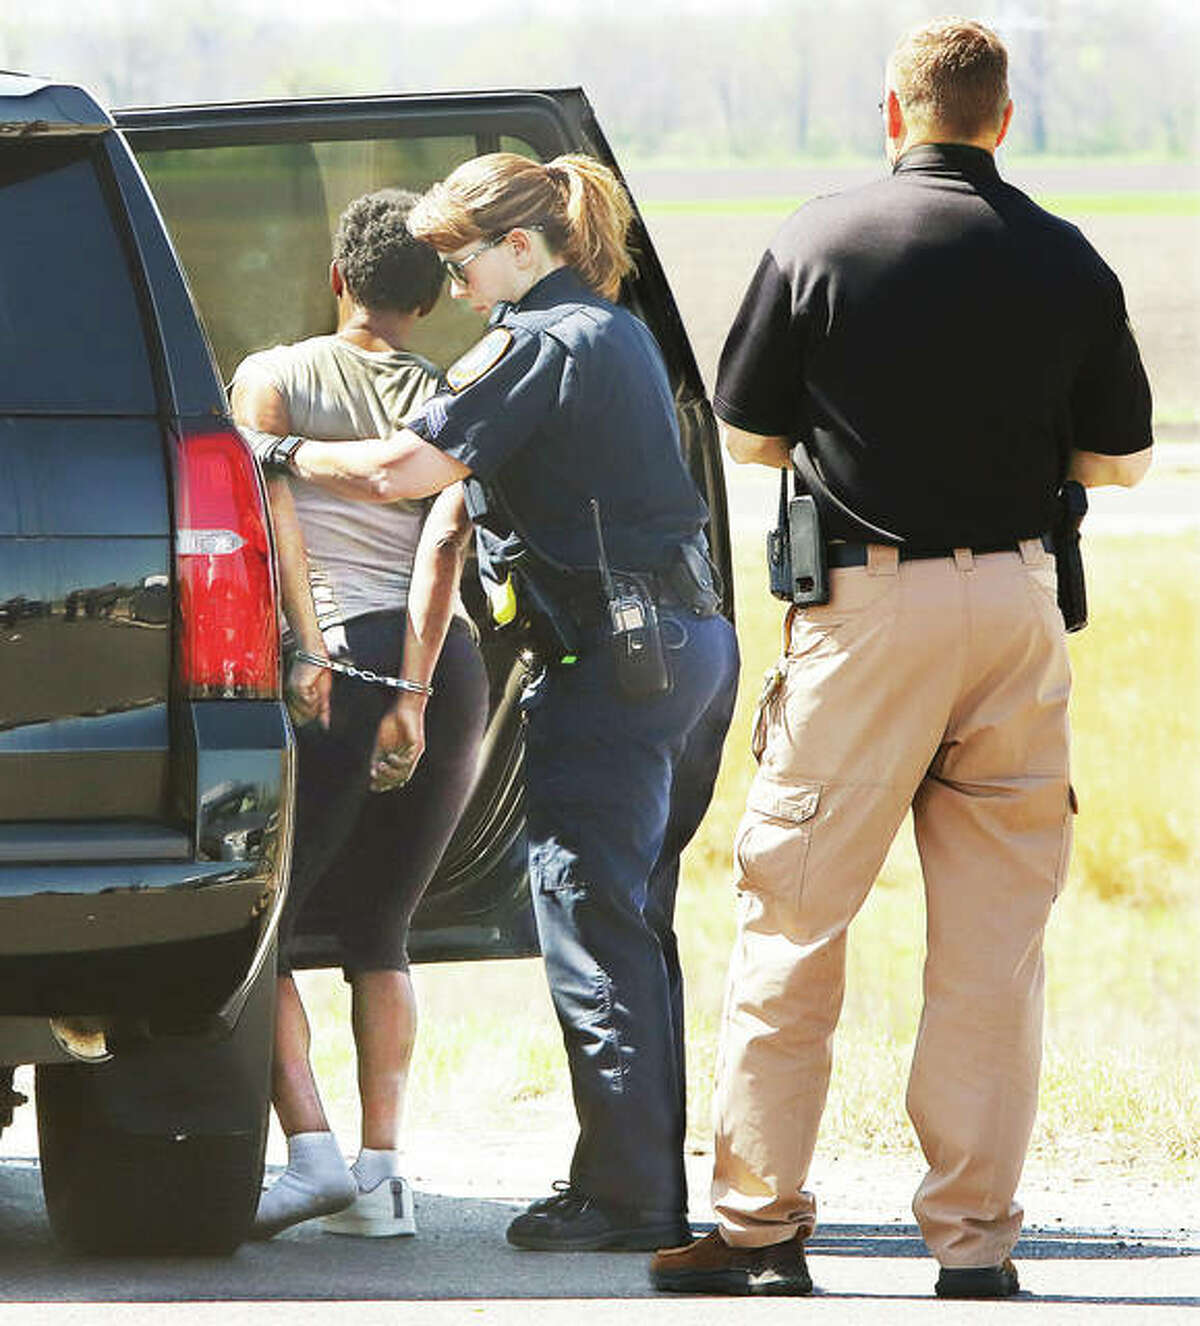 Roxana Police Chief Will Cunningham, right, supervises as a female Bethalto Police officer called to the scene to assist searches a female suspect Friday.